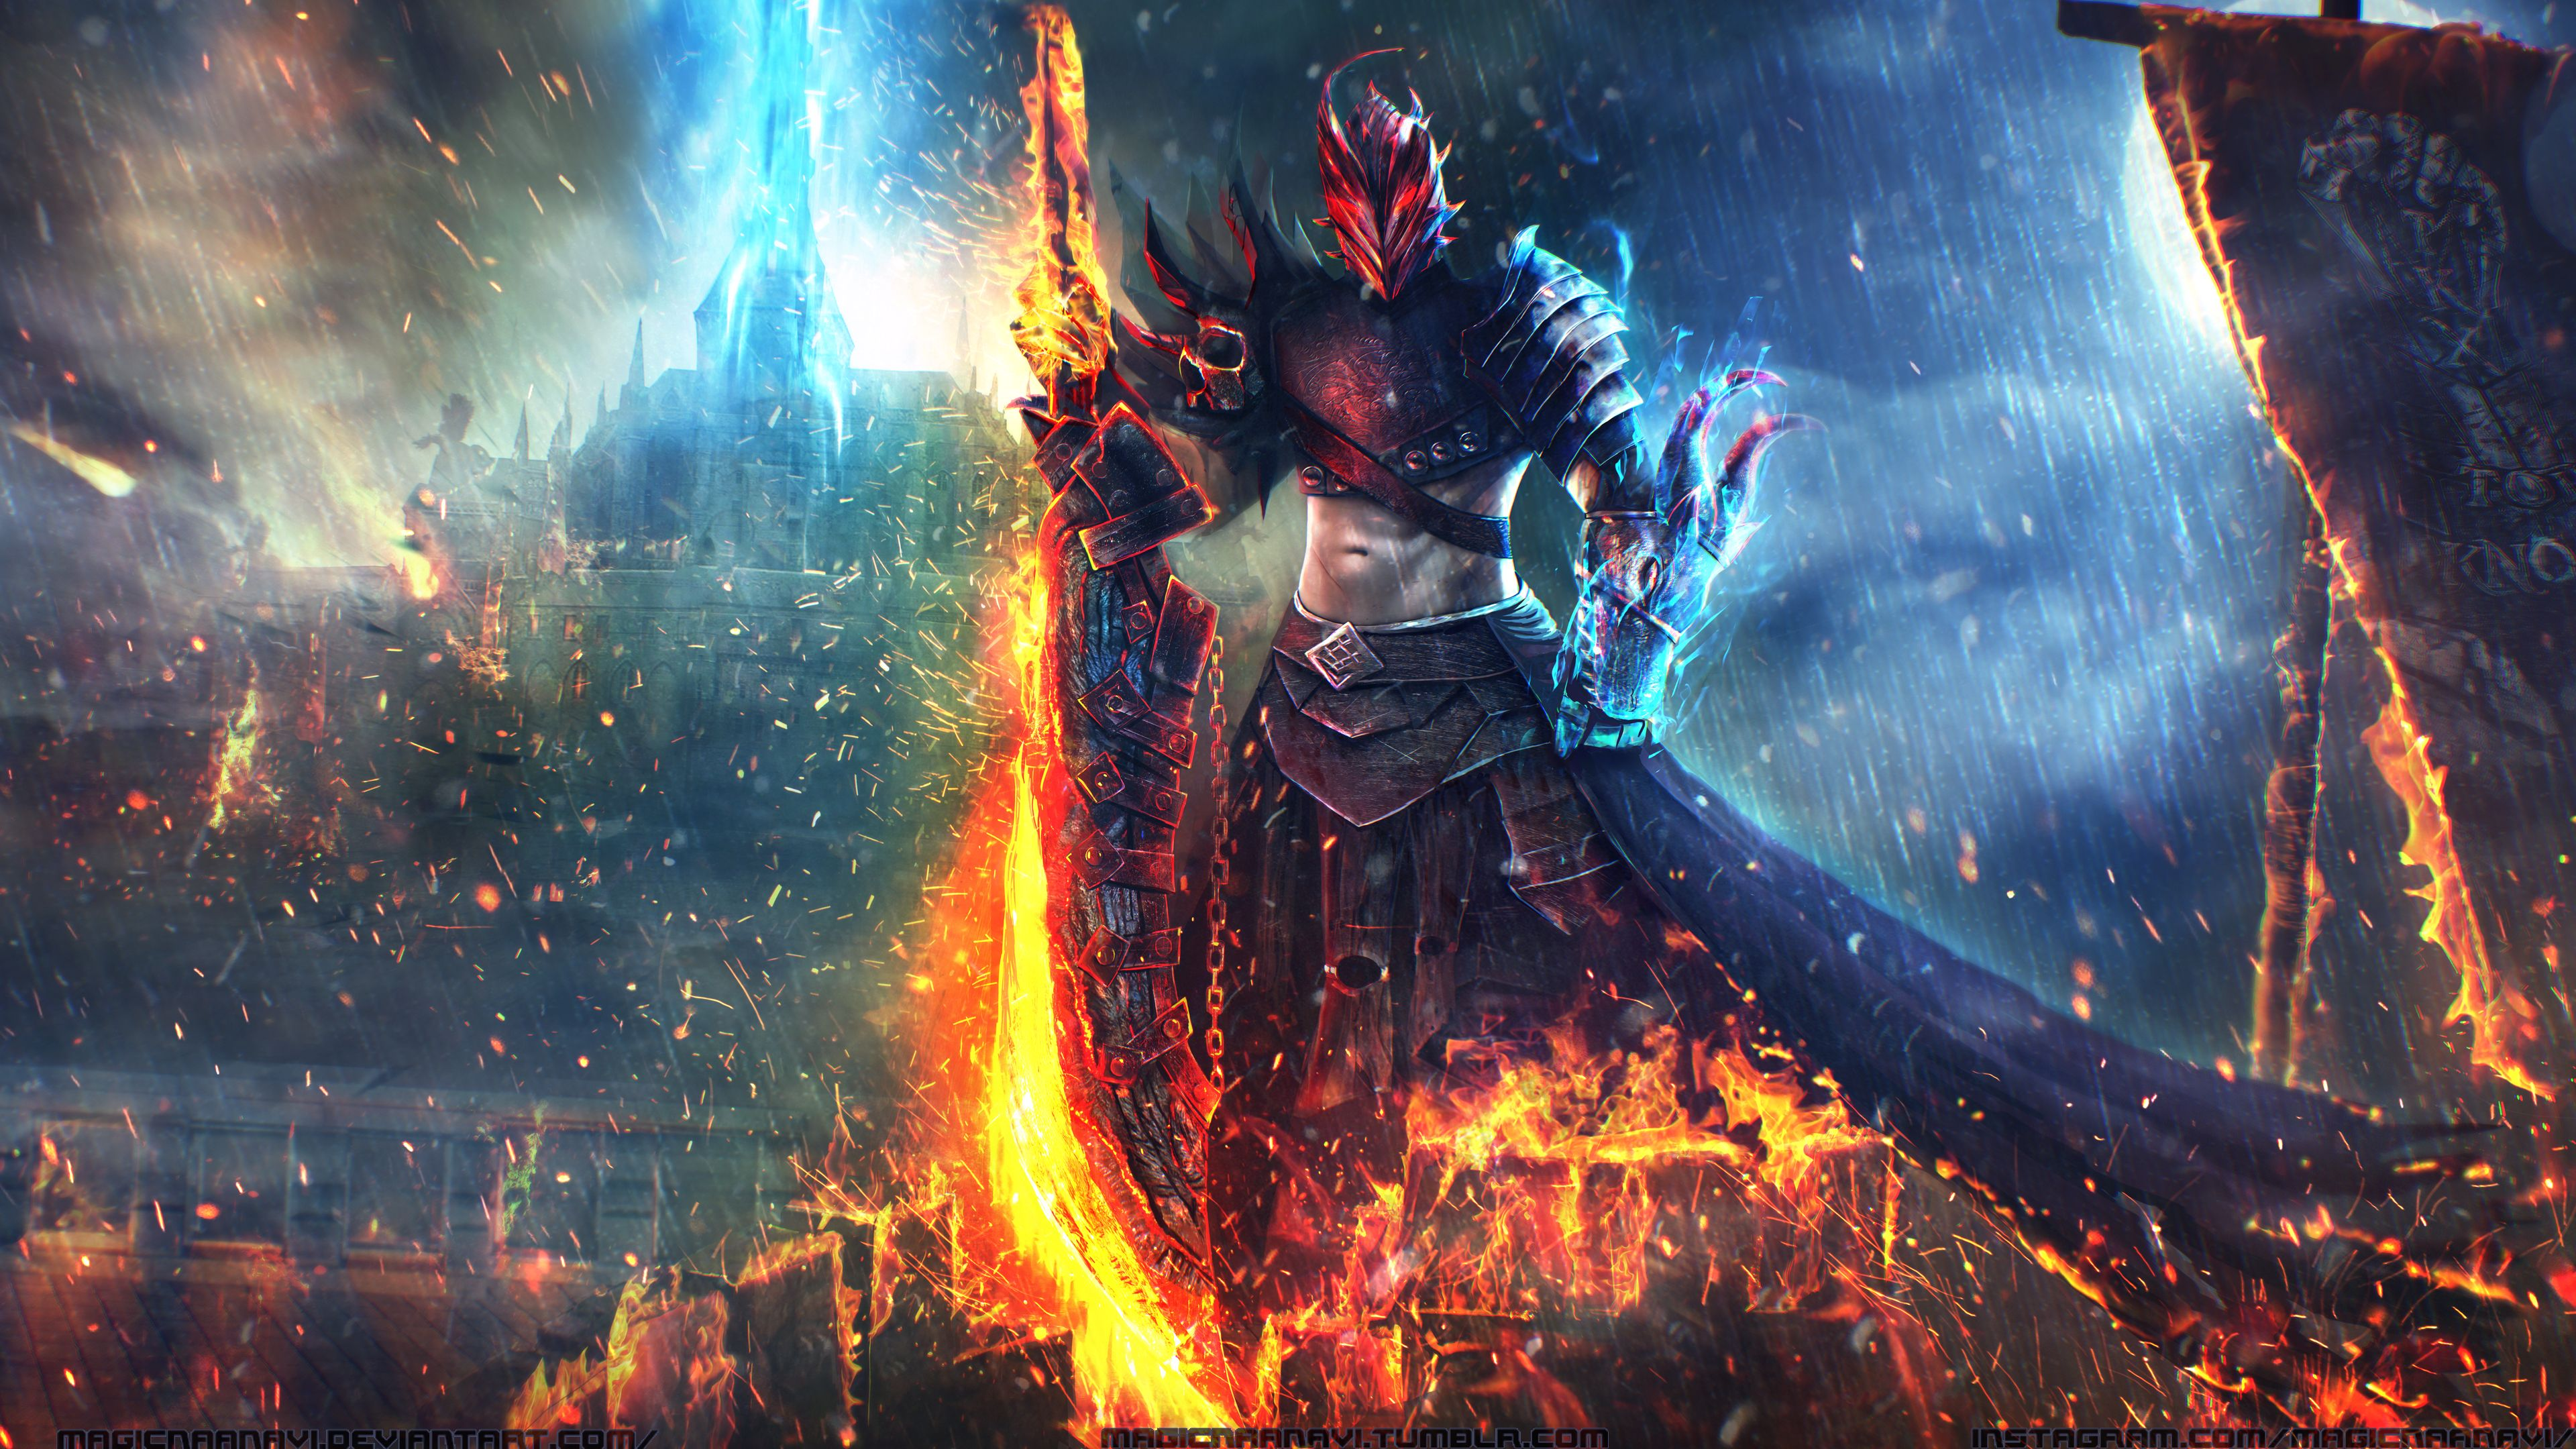 Sword Warrior 4k Warriors Wallpaper Fire Warrior Guild Wars